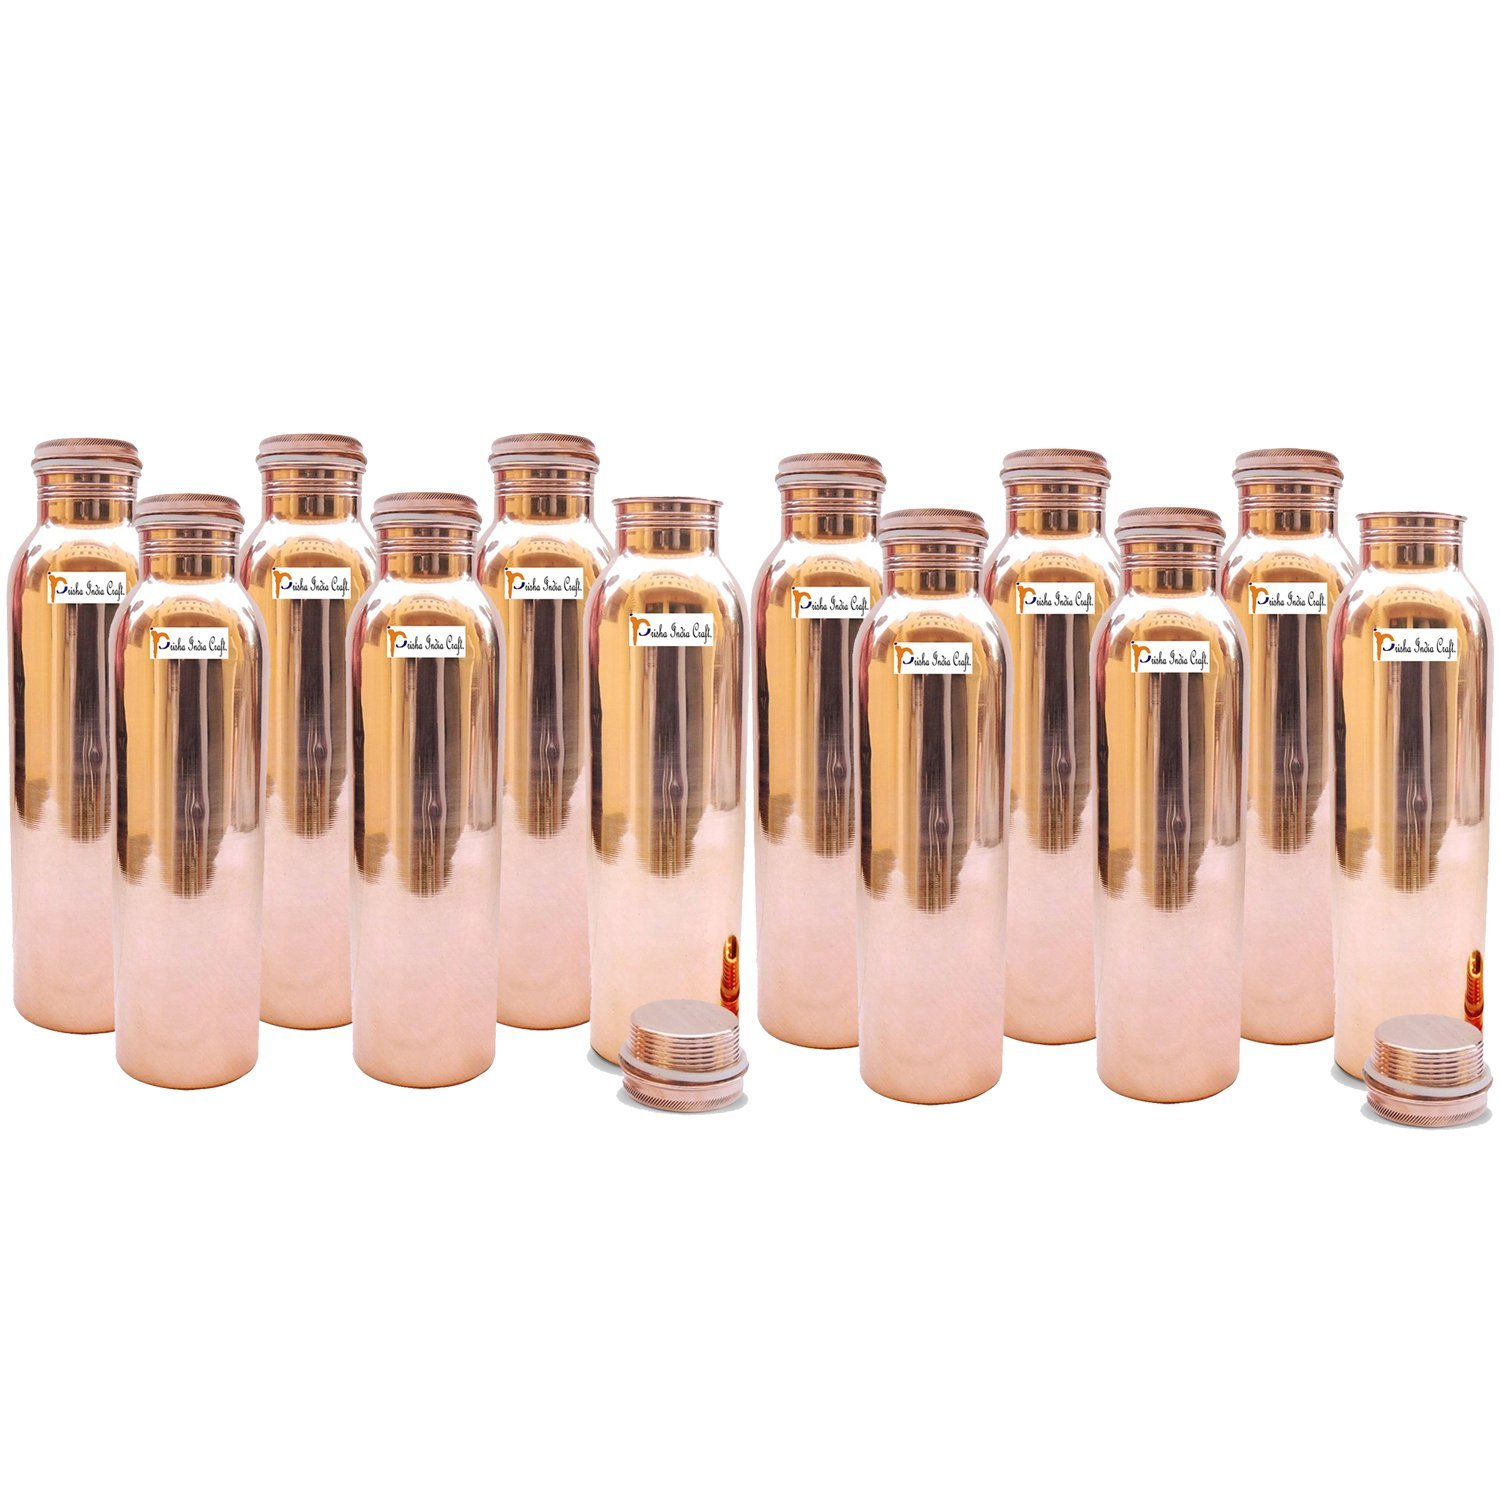 1150ml / 38.89oz - Set of 12 - Prisha India Craft ® Pure Copper Water Bottle for Health Benefits - Water Bottles Joint Free, Handmade - Christmas Gift